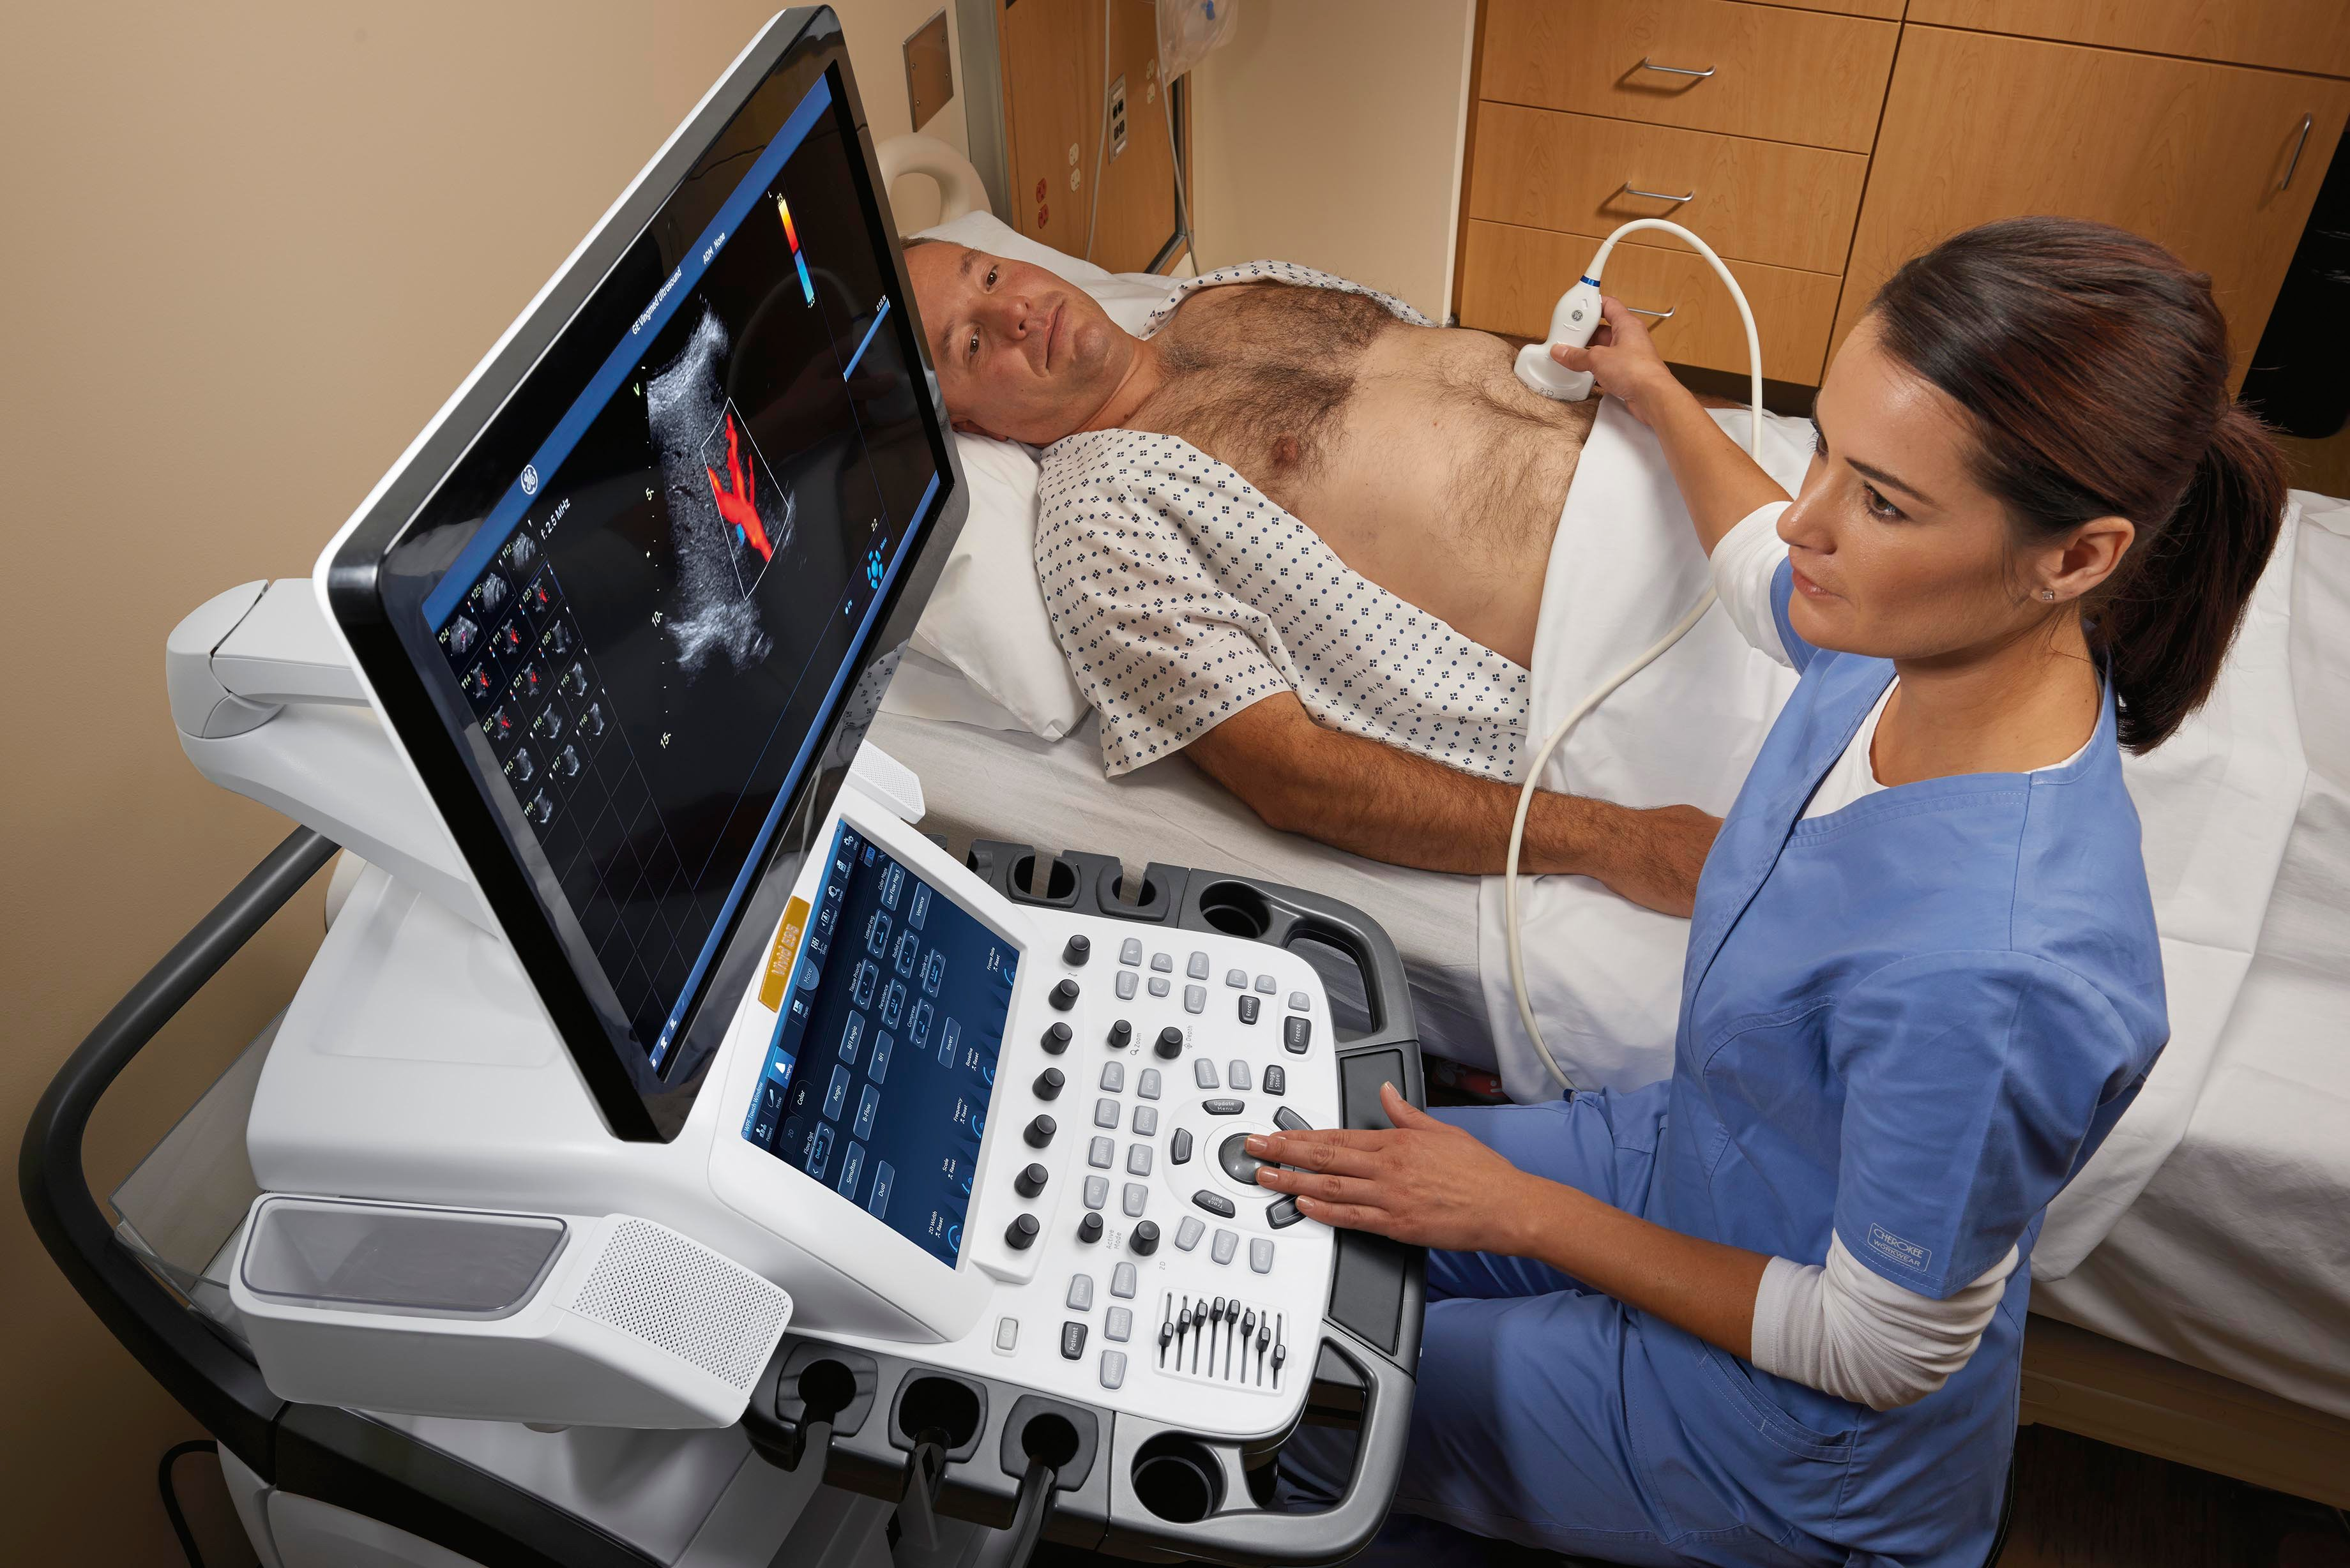 A sonographer performs an abdominal ultrasound exam with GE's Vivid E95 system